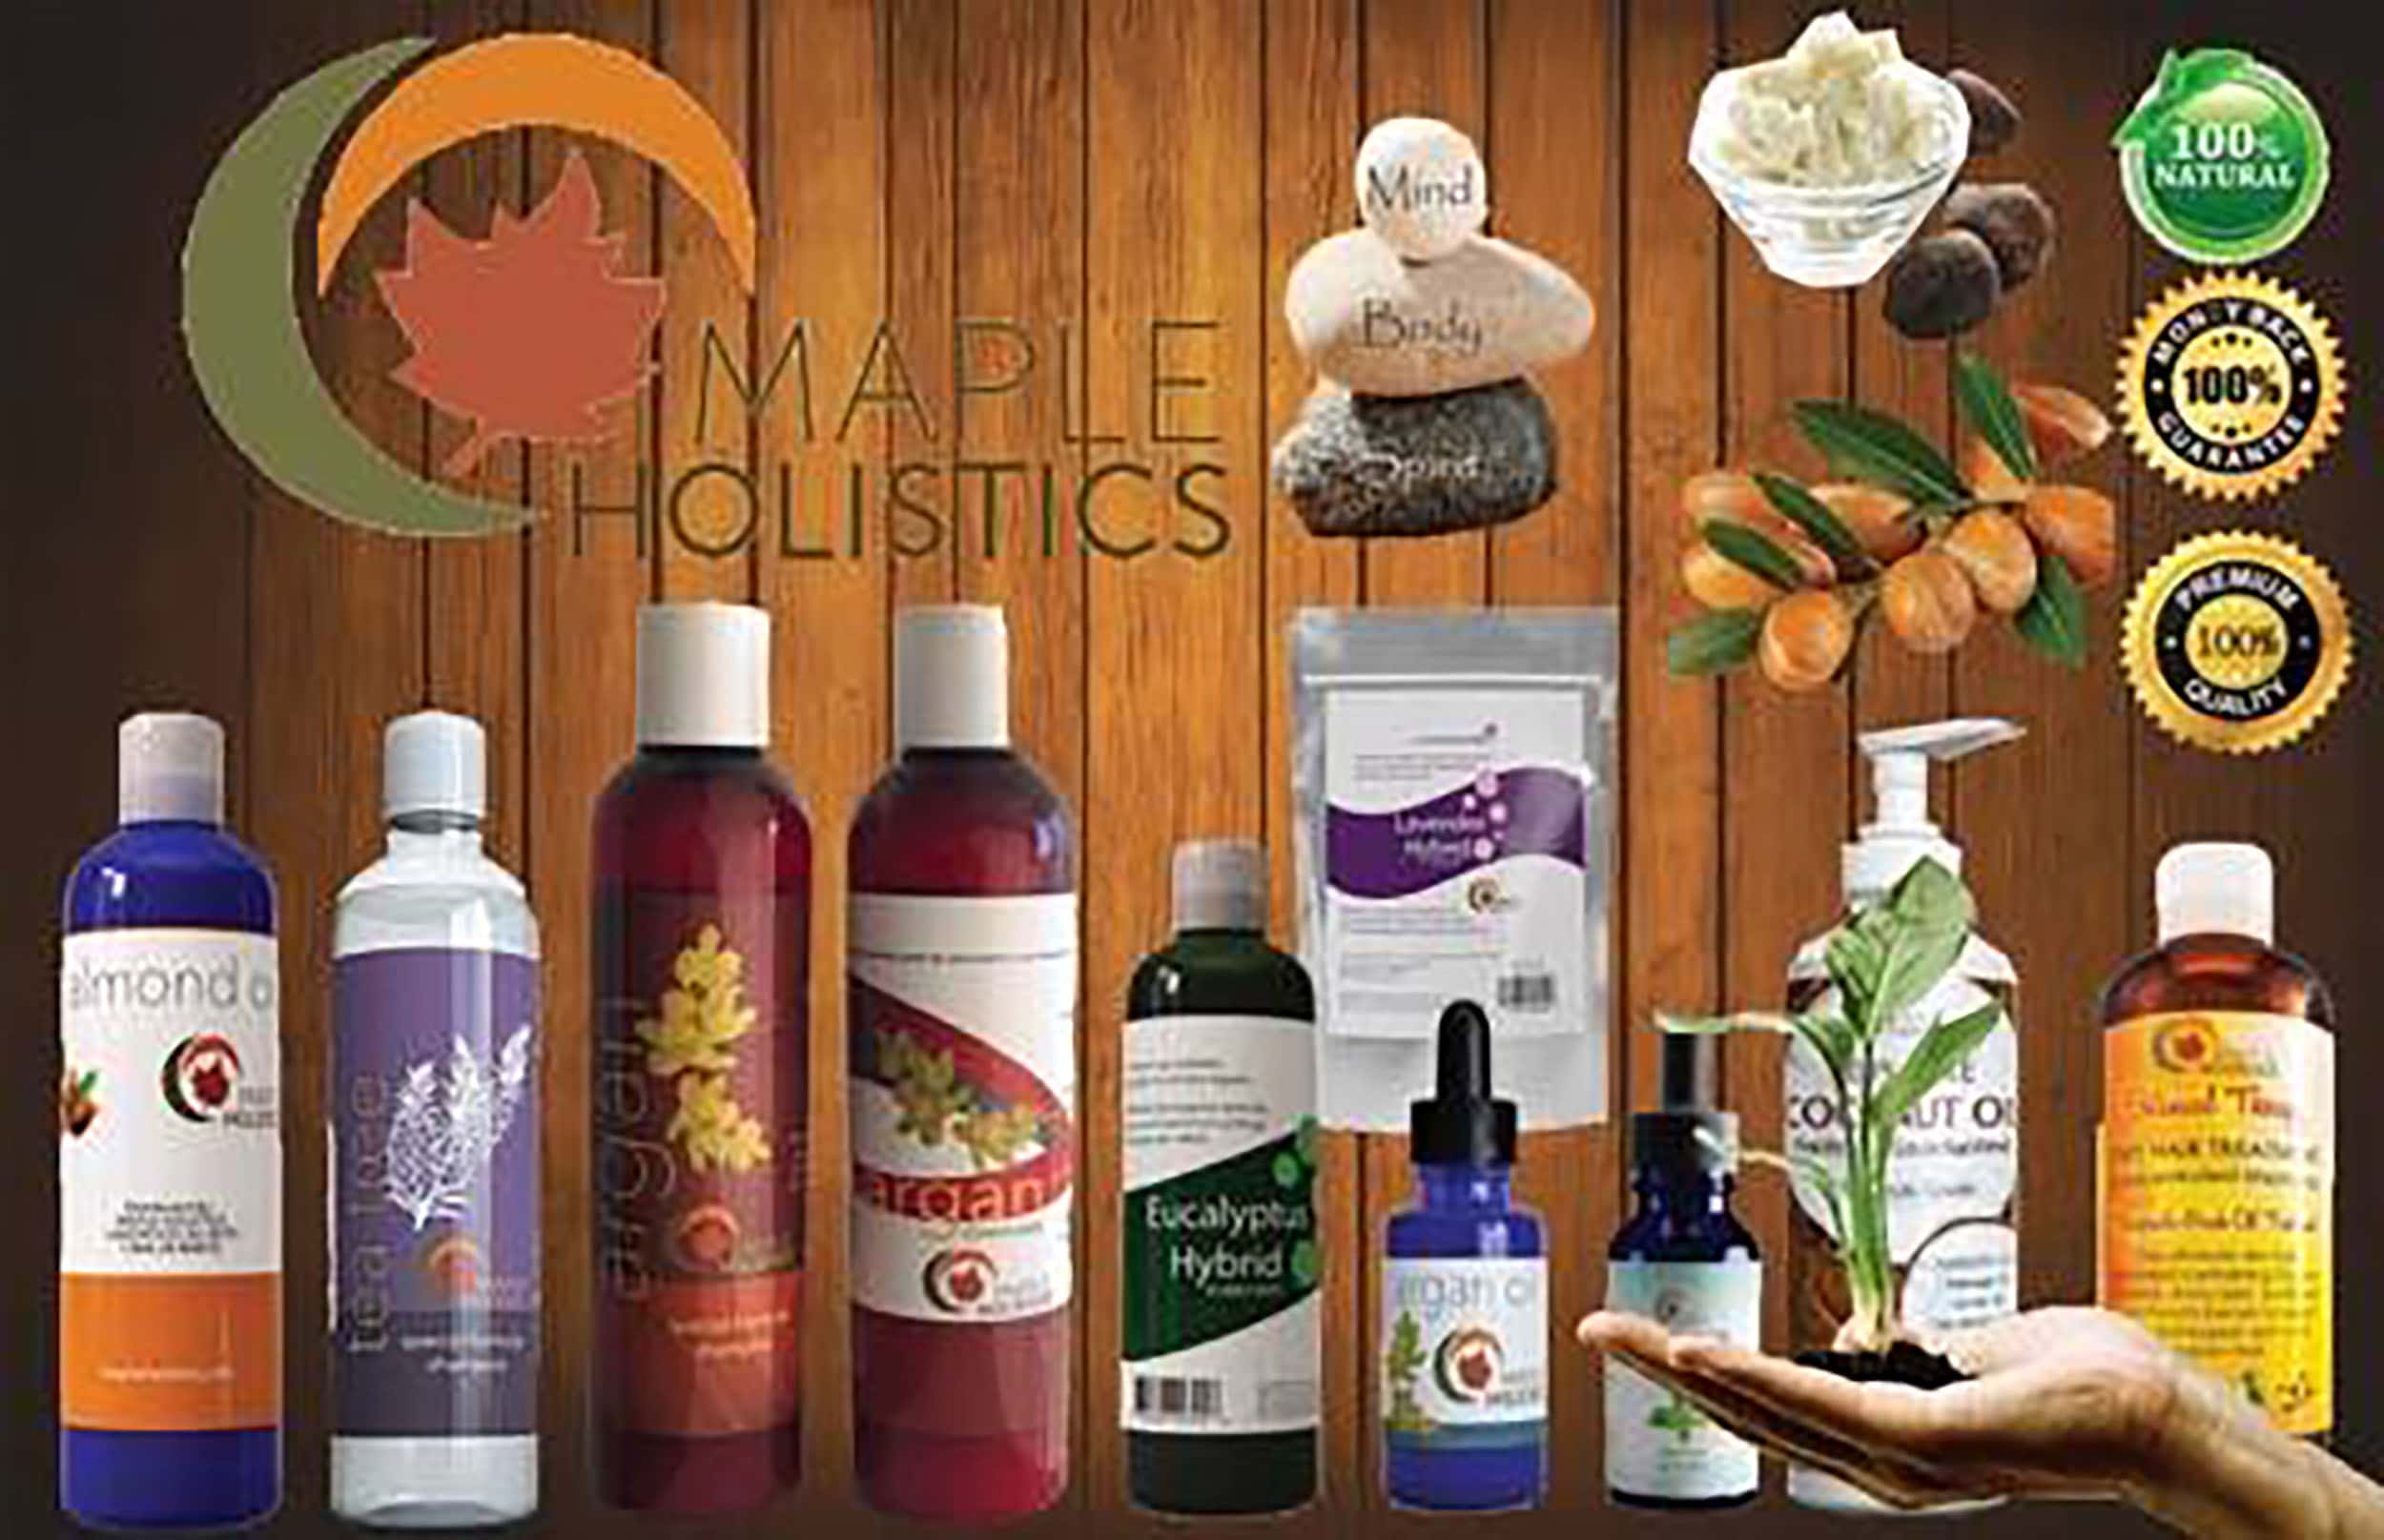 maple holistics